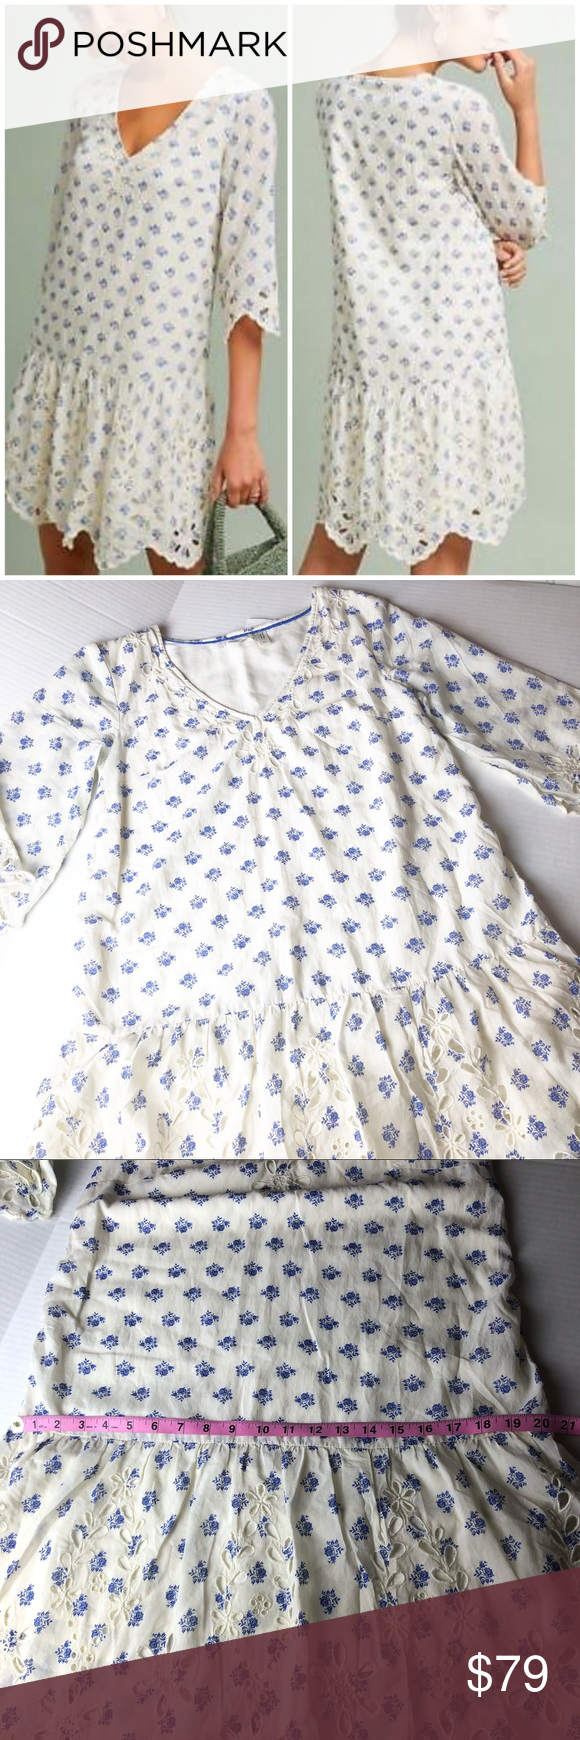 2f1b1f0f5a5a New Anthropologie Meadow Rue Eyelet Tunic Dress SP New without tag Soft  floral blue pattern V Neck Tunic Dress Dropped waist and 3/4 Length Sleeves  Eyelet ...